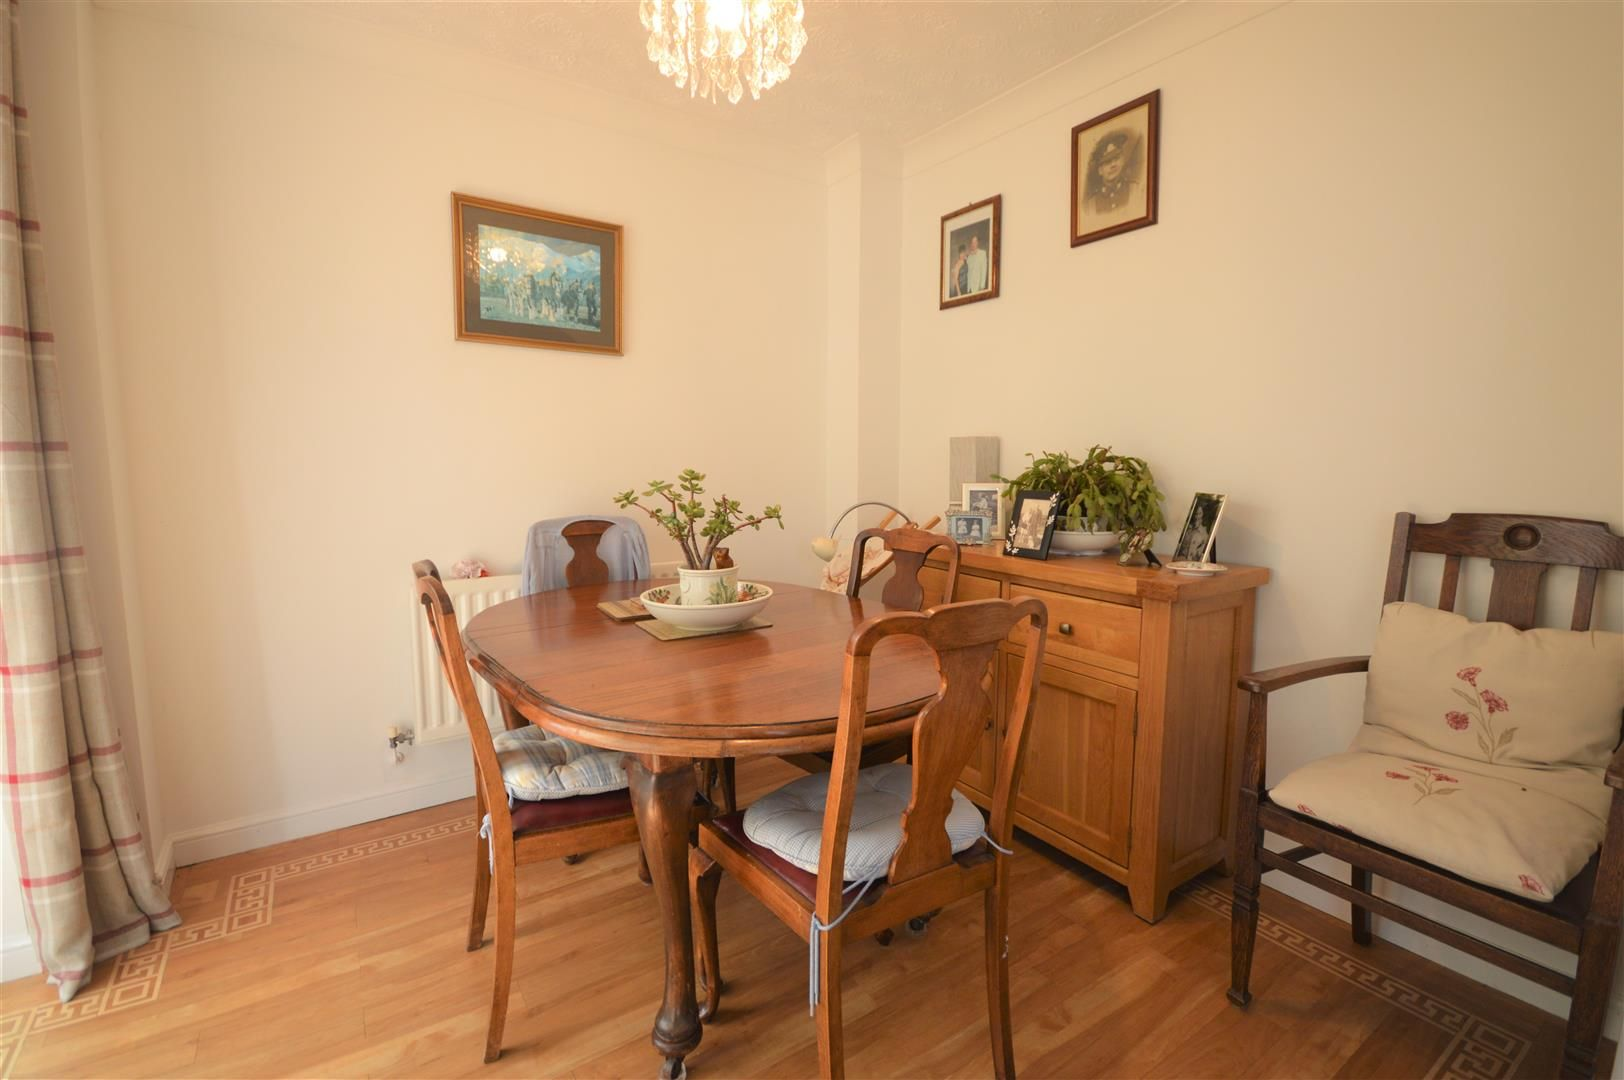 4 bed detached for sale in Leominster  - Property Image 3